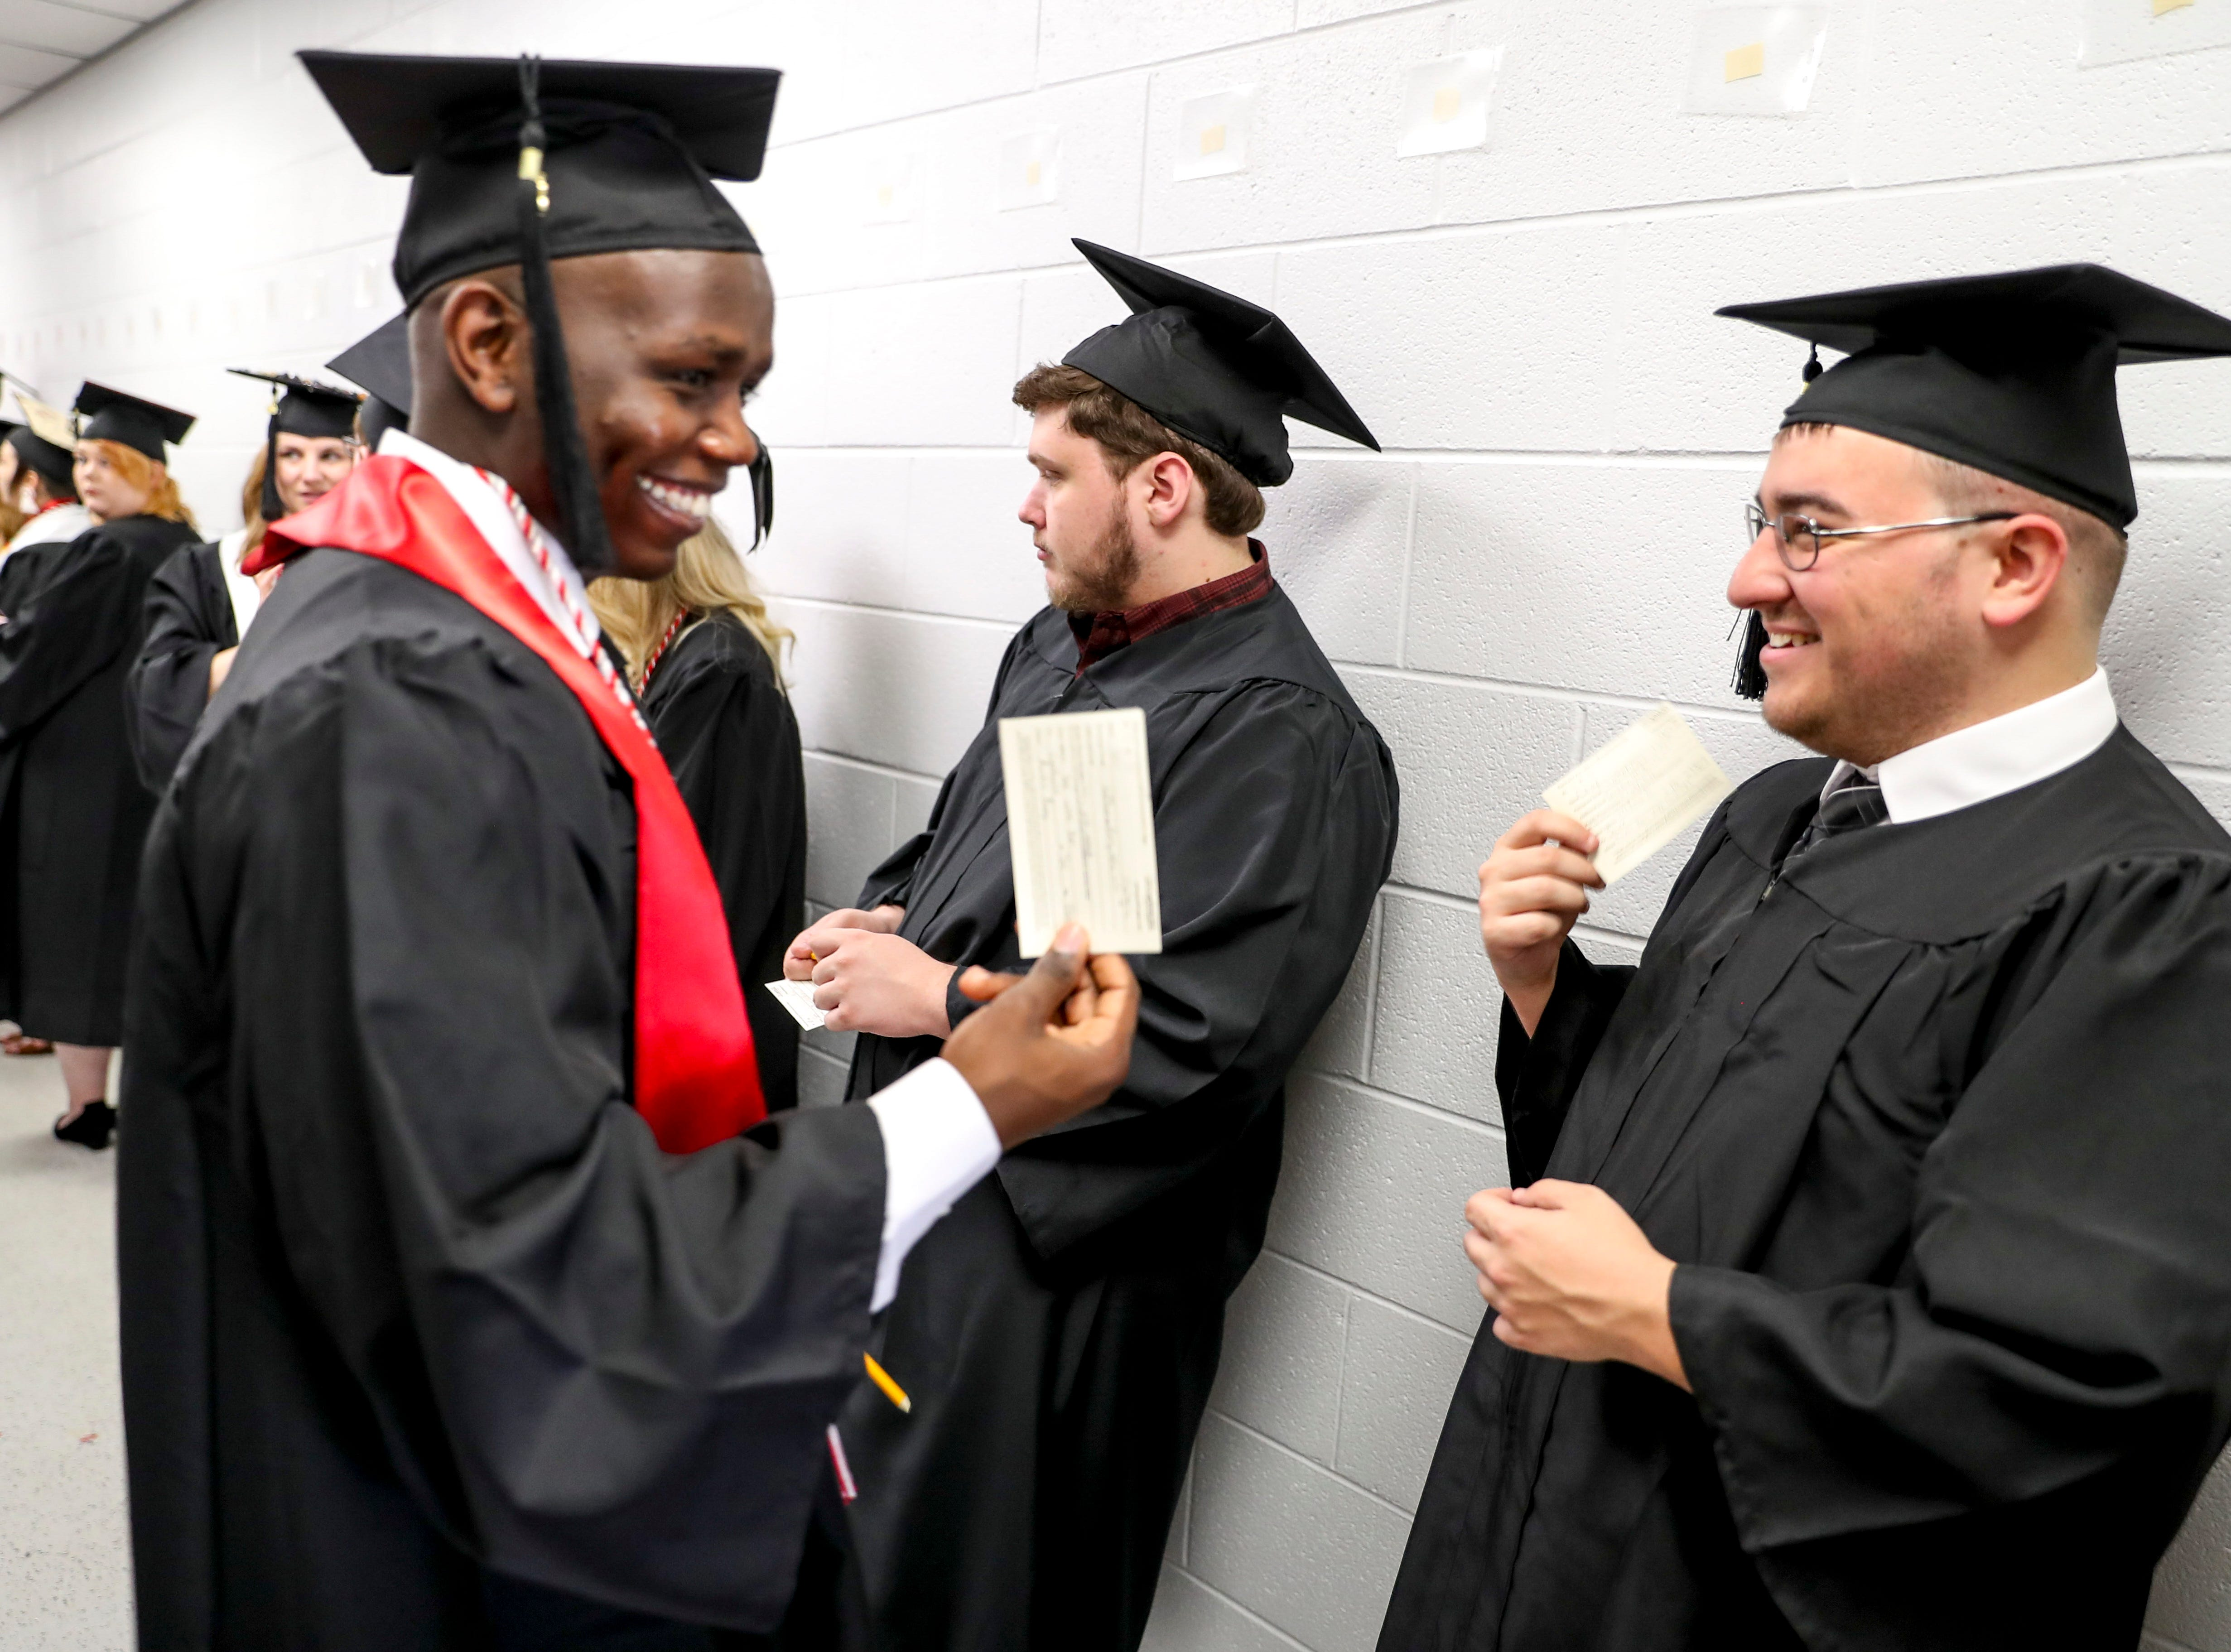 Students joke and wave name cards given to them like small fans in the heat at the Austin Peay spring commencement ceremony 2019 for College of Business and College of STEM at Winfield Dunn Center in Clarksville, Tenn., on Friday, May 3, 2019.